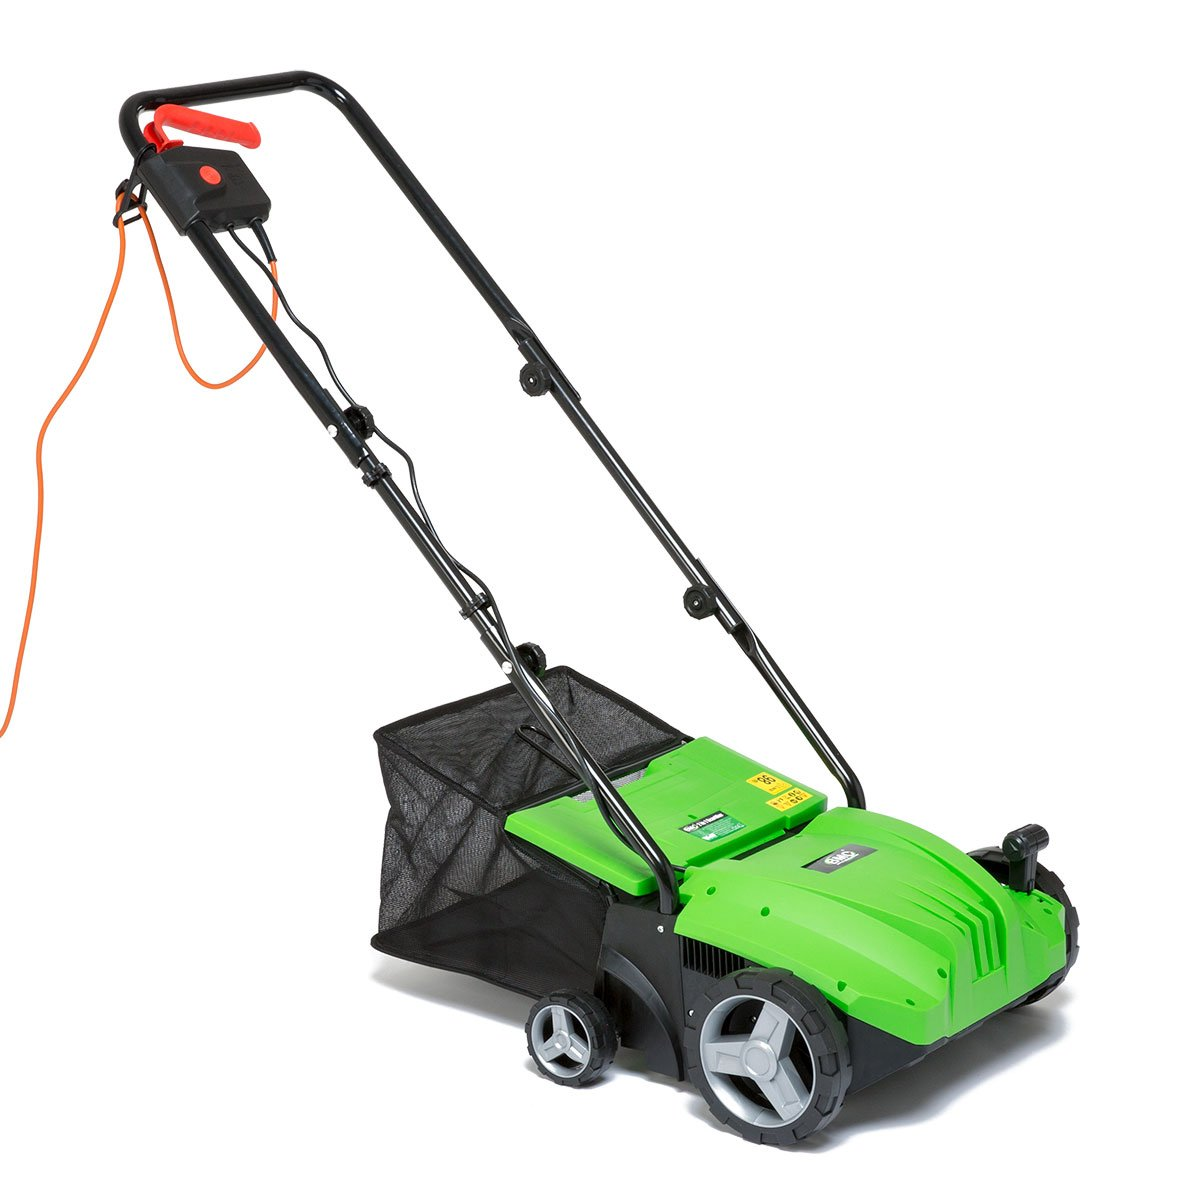 BMC 1500w 2 in 1 Electric Lawn Scarifier Aerator Lawn Rake with 35 Litre Collection Bag & 20 Spring Tine Bar for Removing Moss Leaves & Debris Fitted 10m Cable 5 Depth Positions - 2 Years Warranty